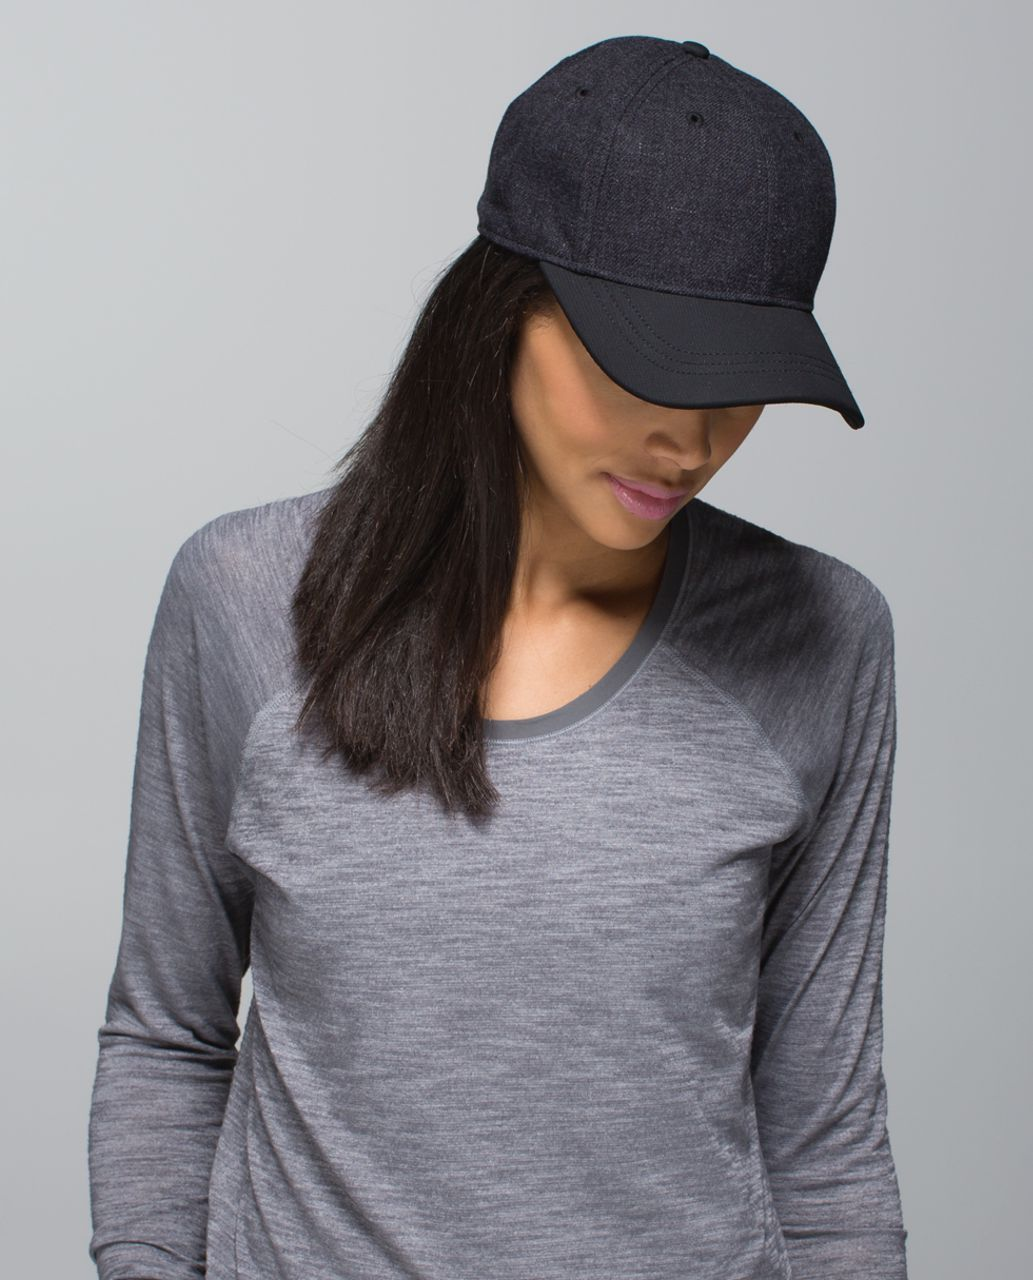 Lululemon Play The Field Cap *Wool - Heathered Black